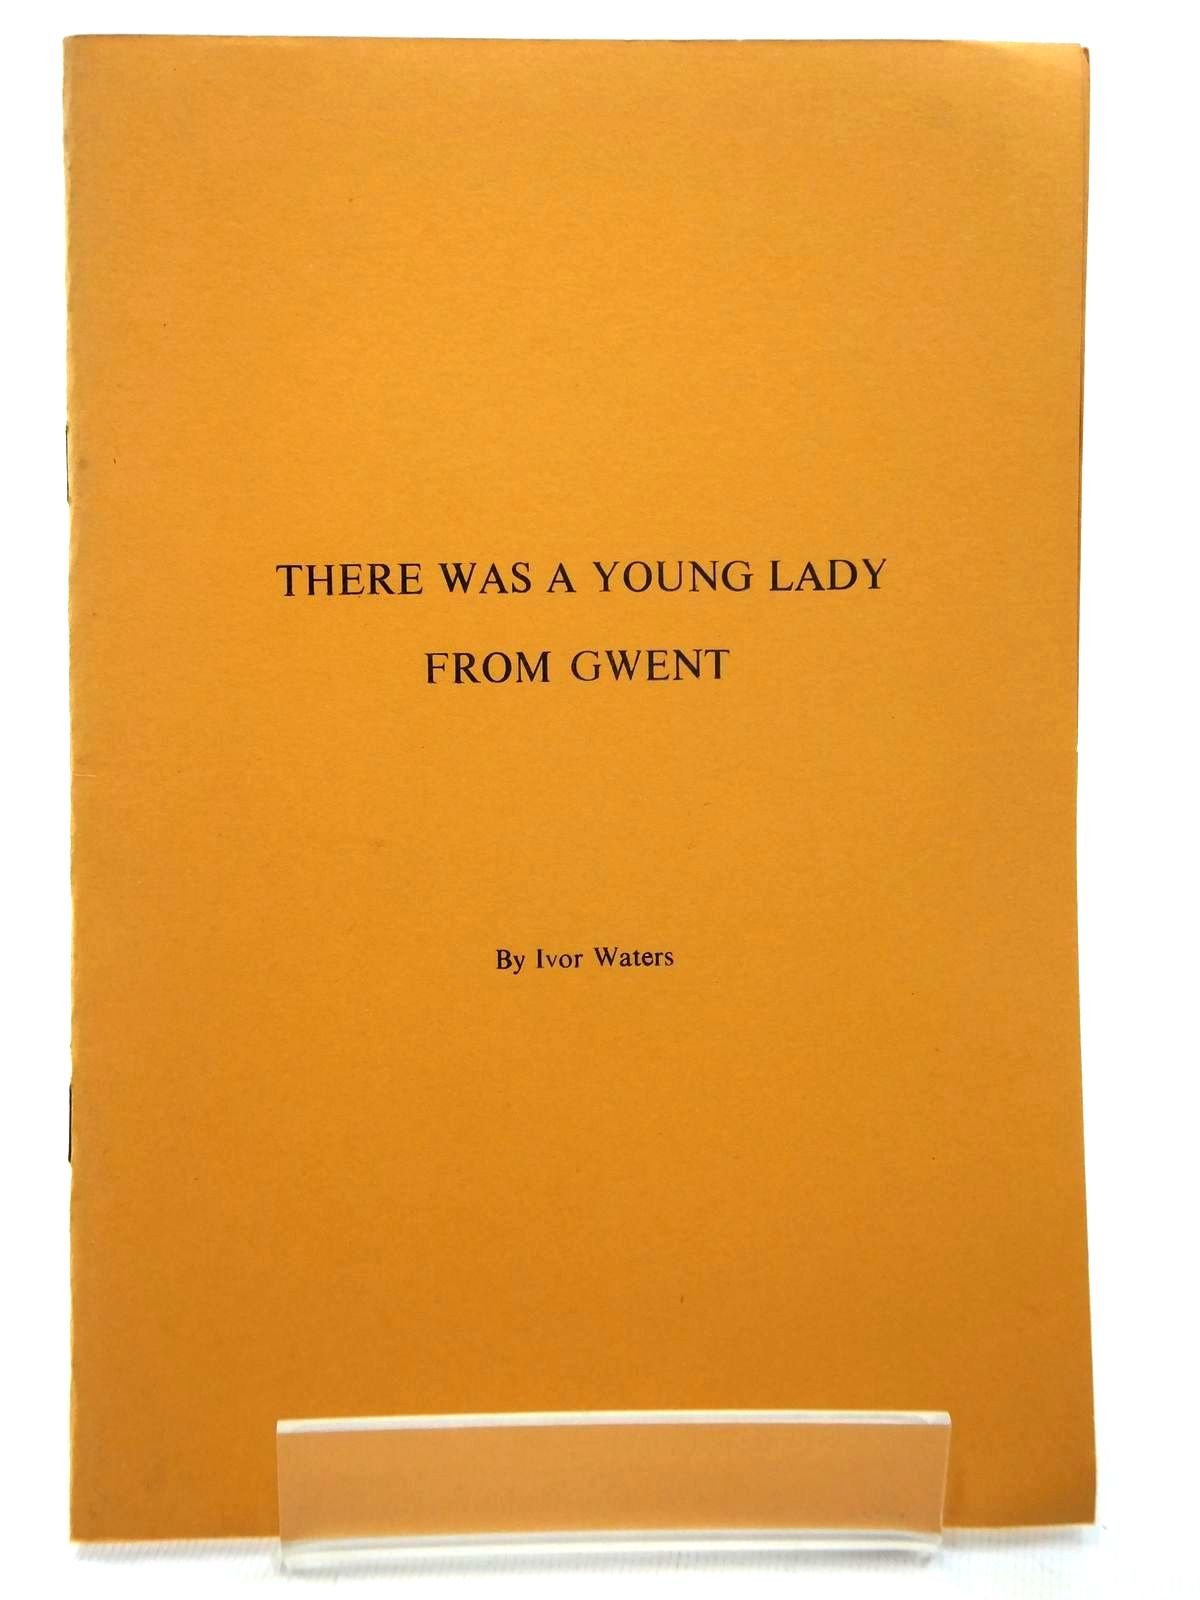 Photo of THERE WAS A YOUNG LADY FROM GWENT written by Waters, Ivor published by Ivor Waters (STOCK CODE: 1609698)  for sale by Stella & Rose's Books